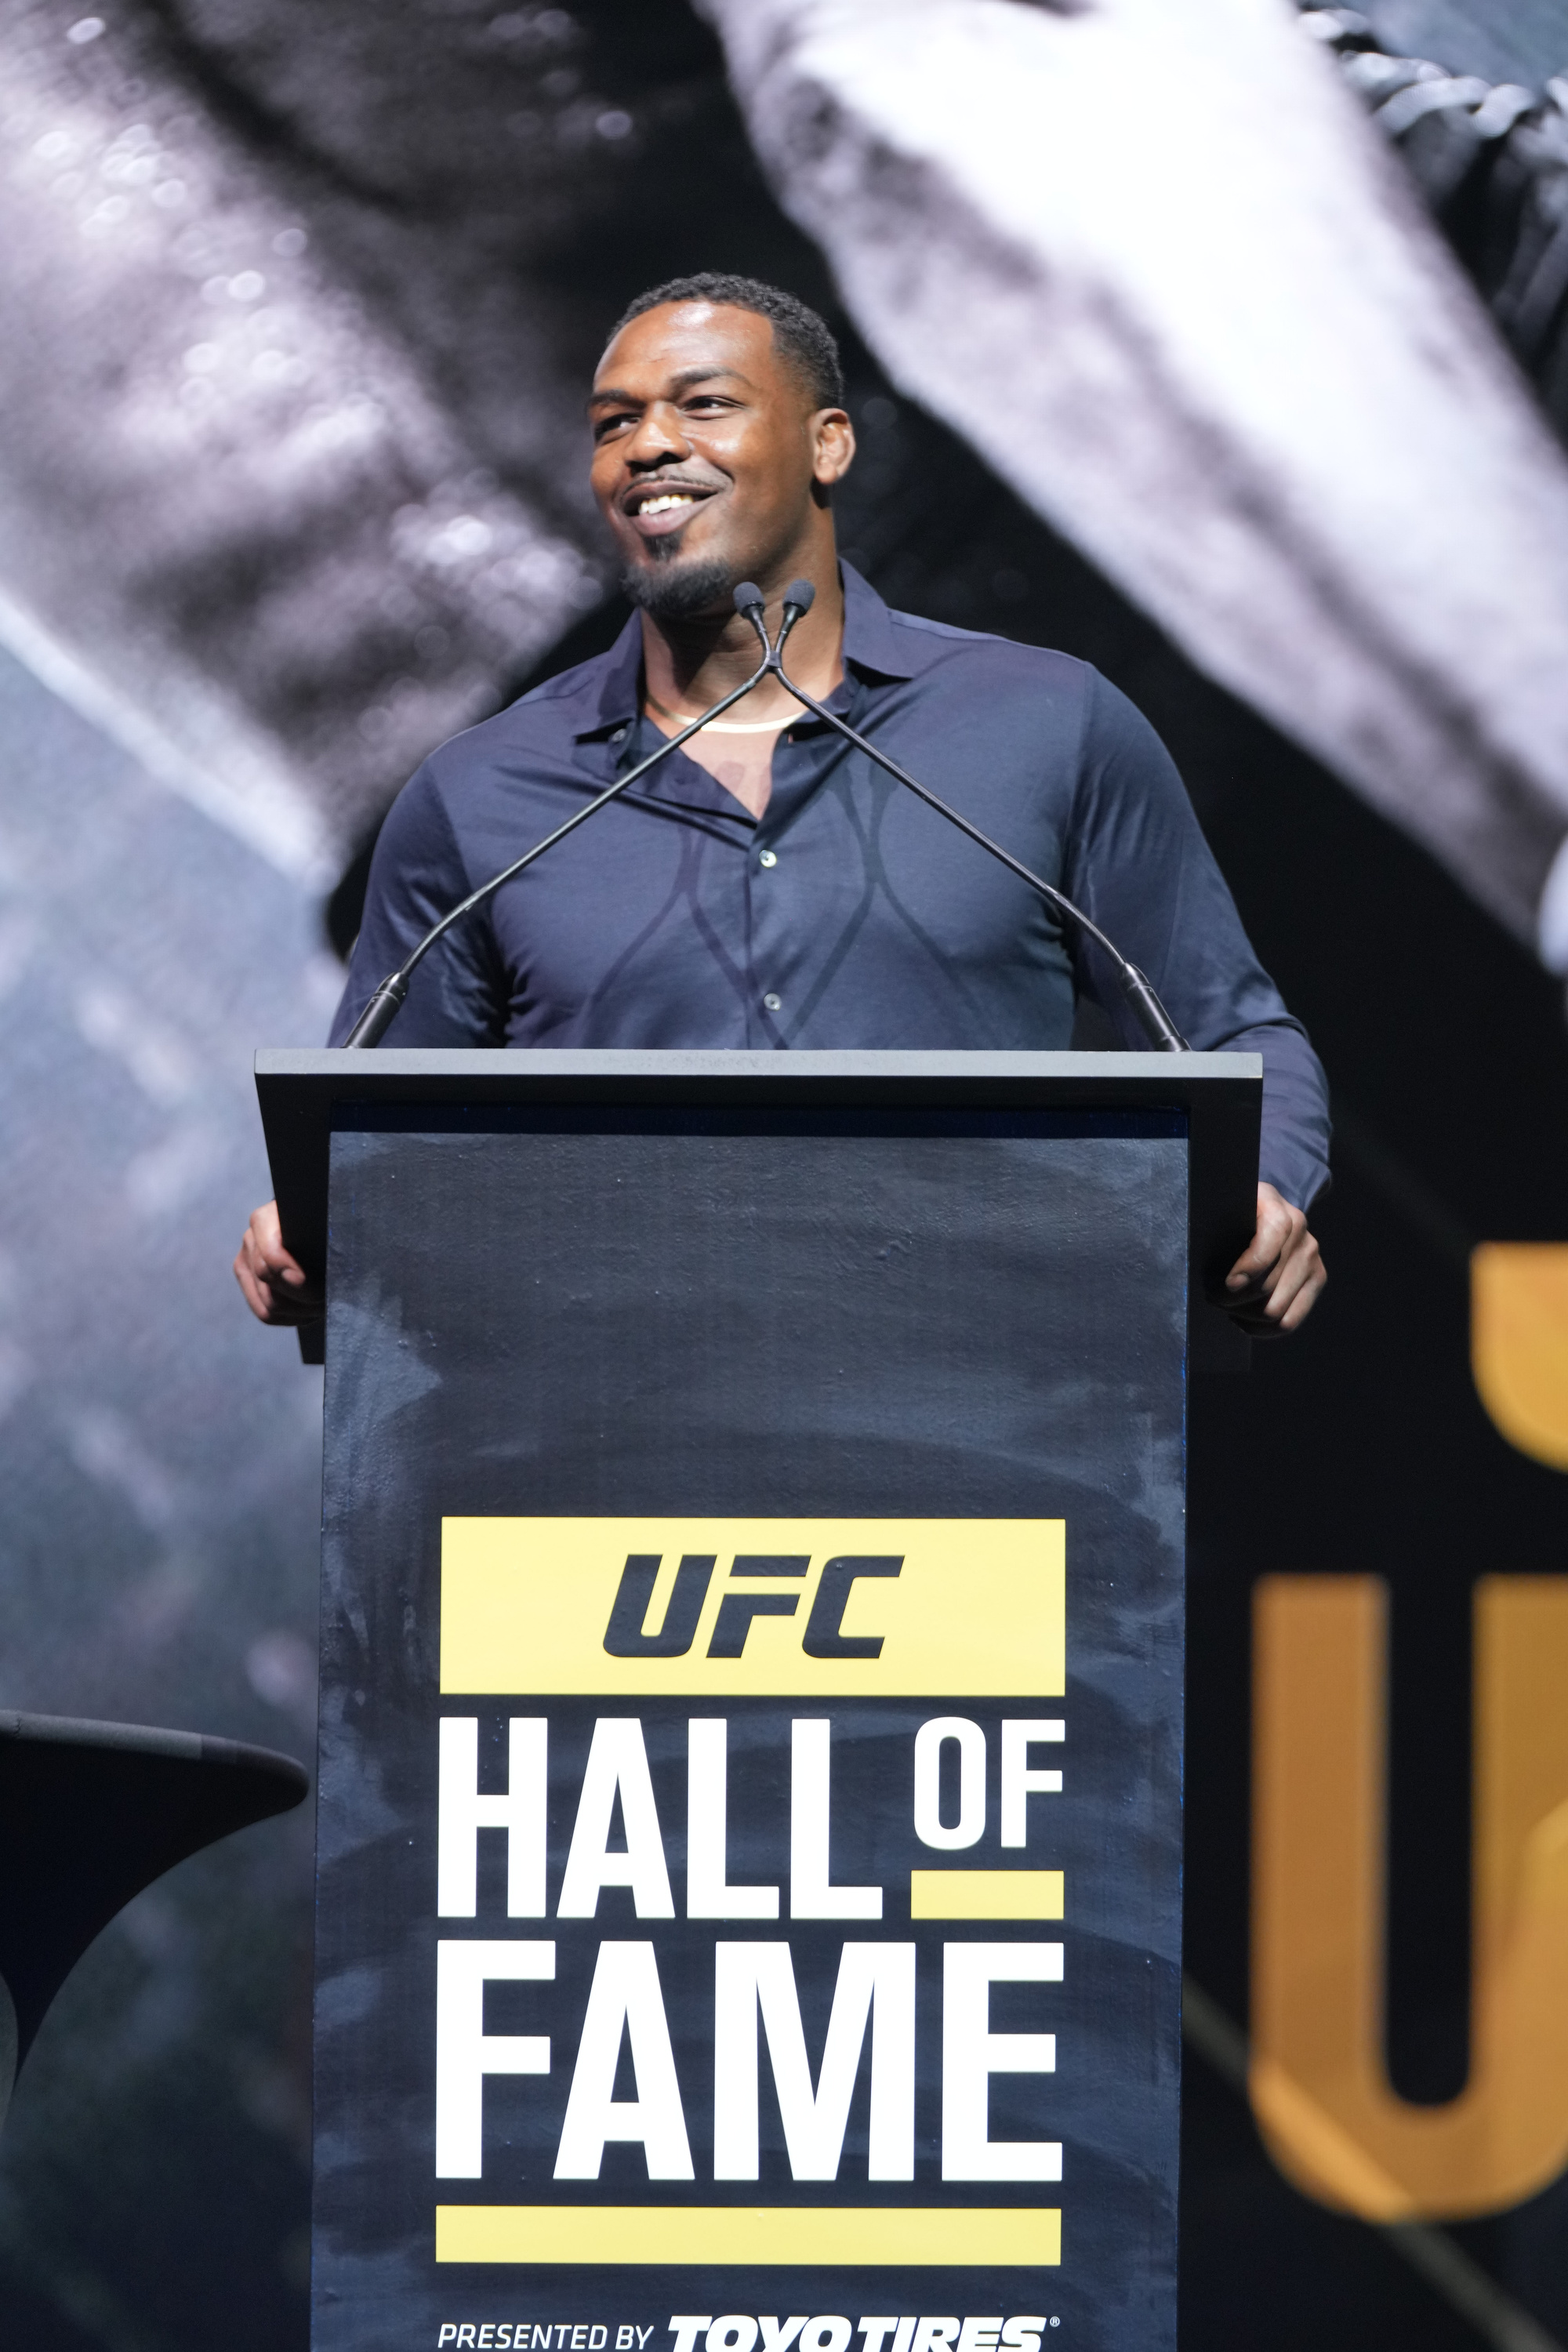 Jon Jones gives his UFC Hall of Fame induction speech hours before his arrest on charges of domestic violence.